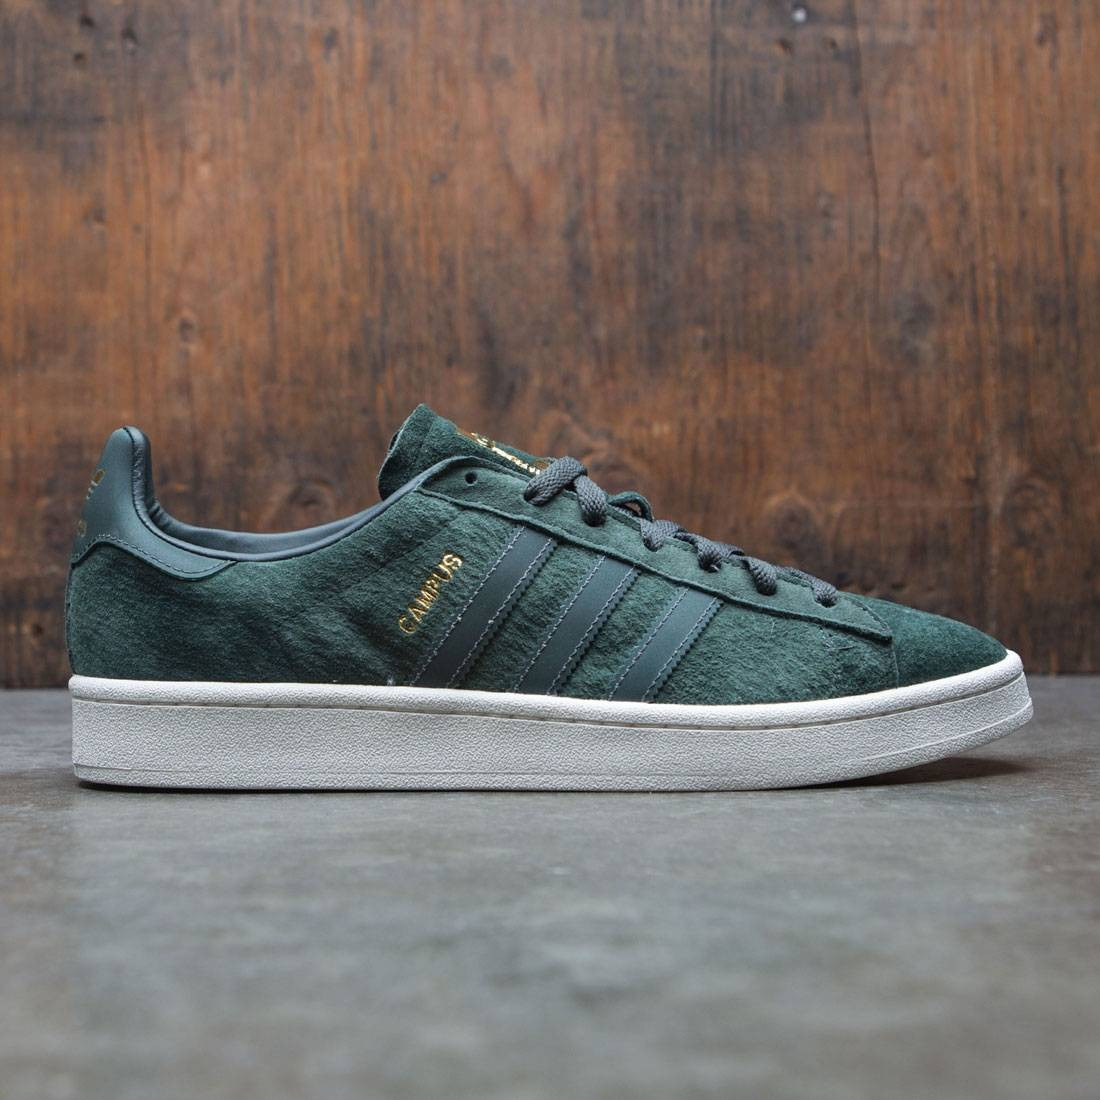 Adidas Men Campus Green Utility Ivy Reflective Gold Metallic